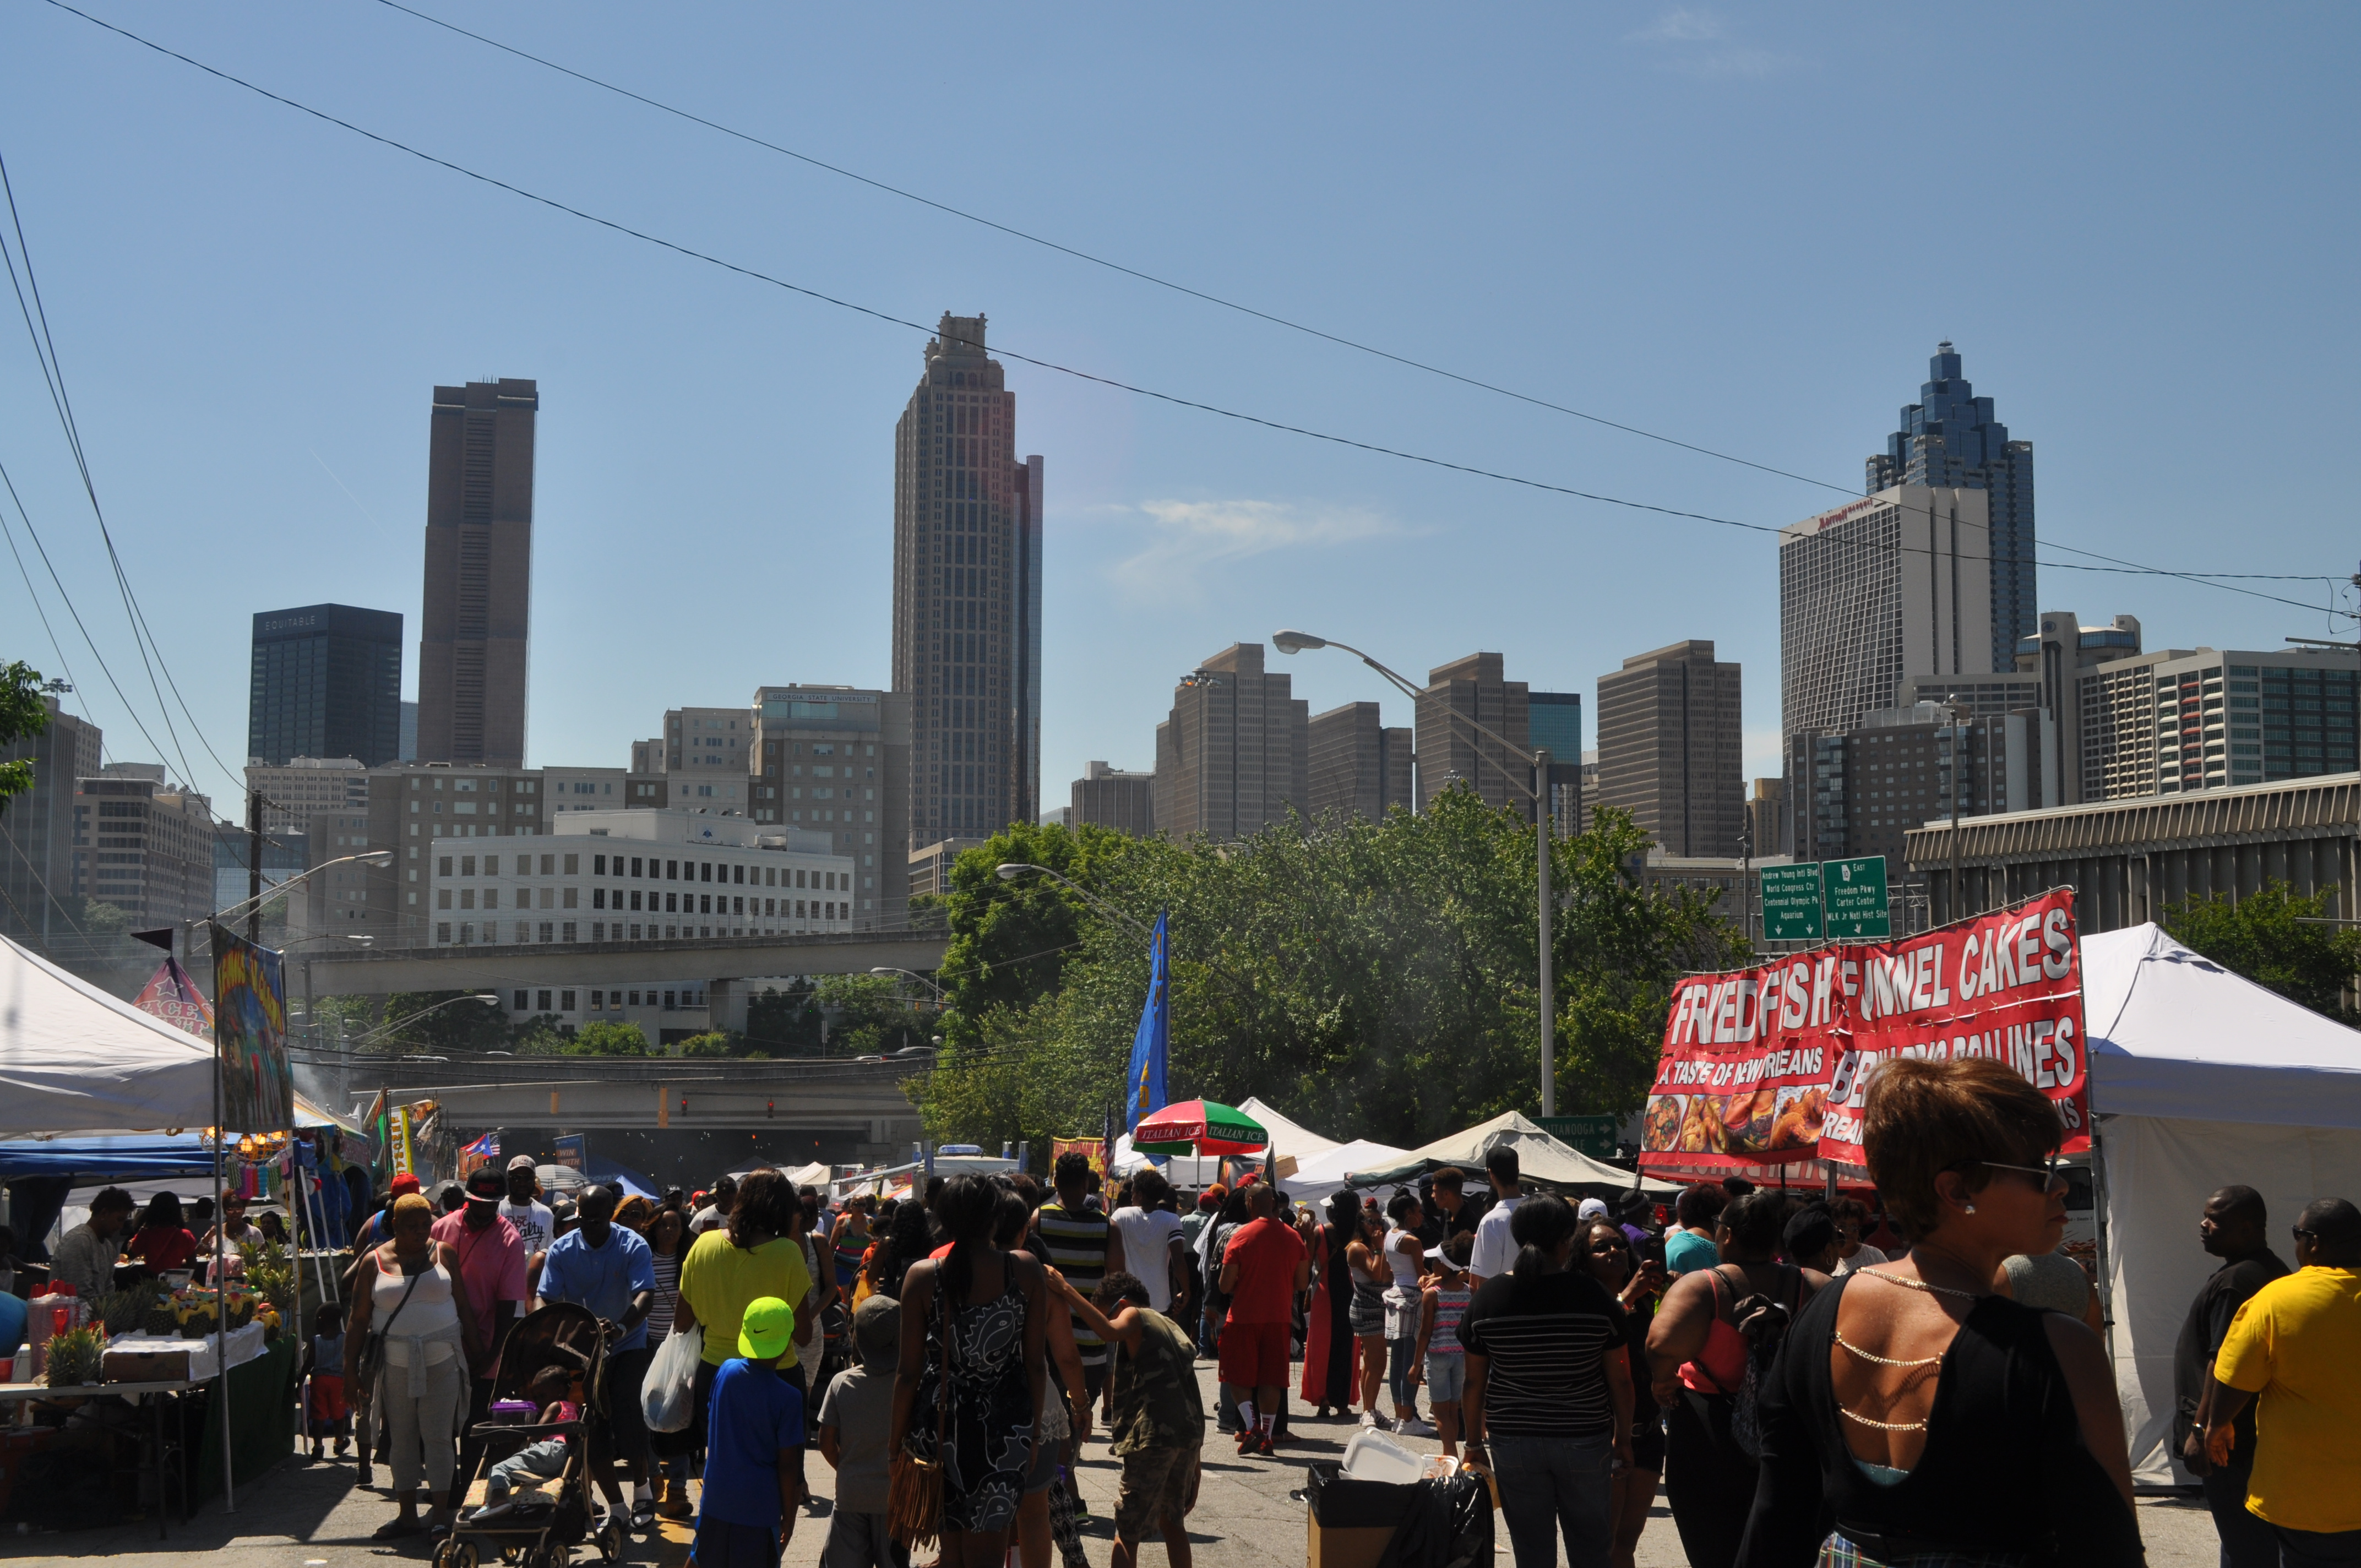 A crowd of people and vendors with downtown skyline beyond.